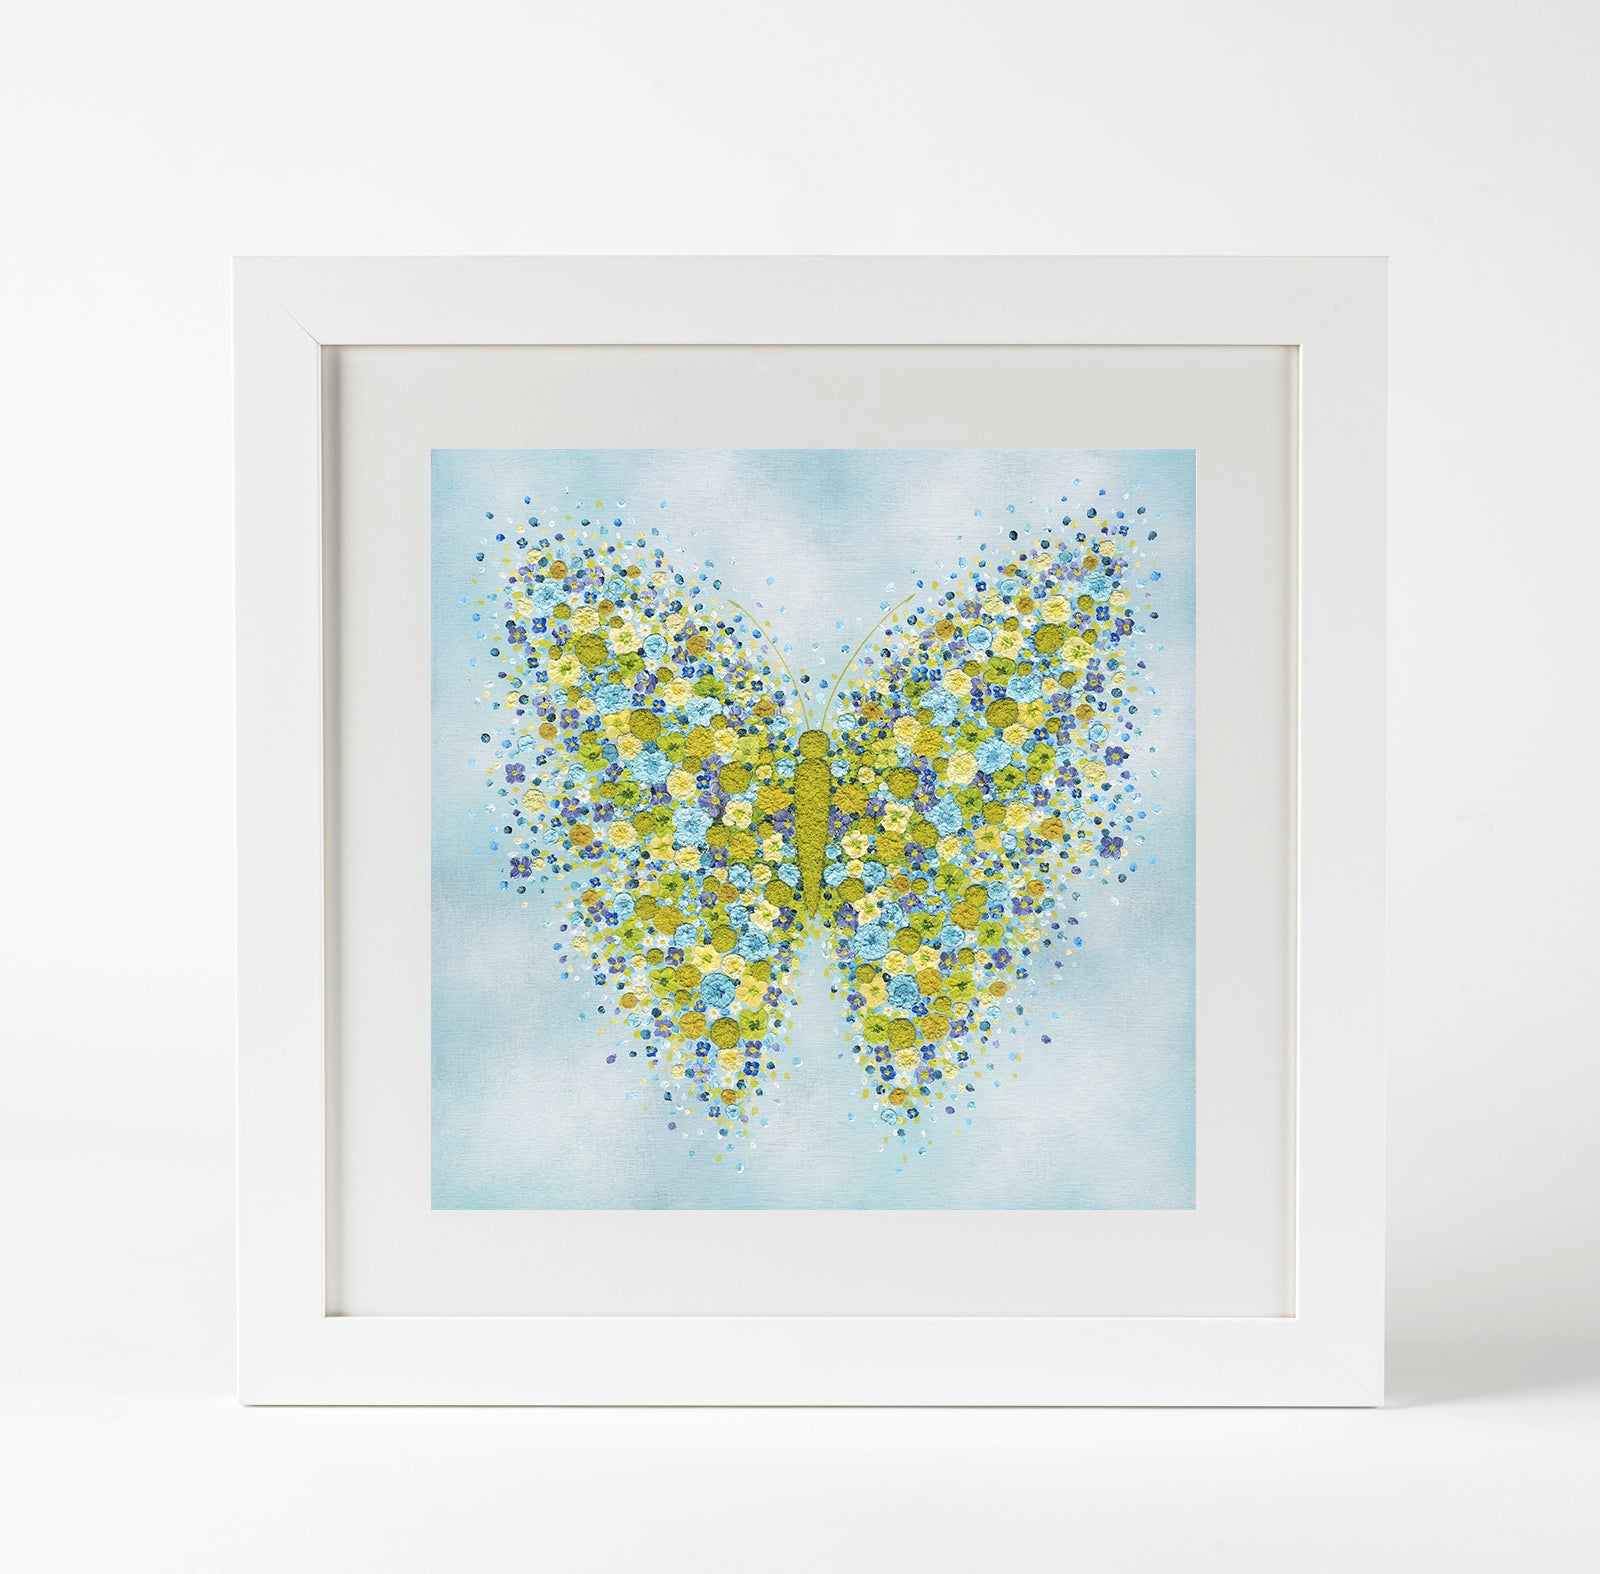 flutterly blue small framed prints alicoulterart